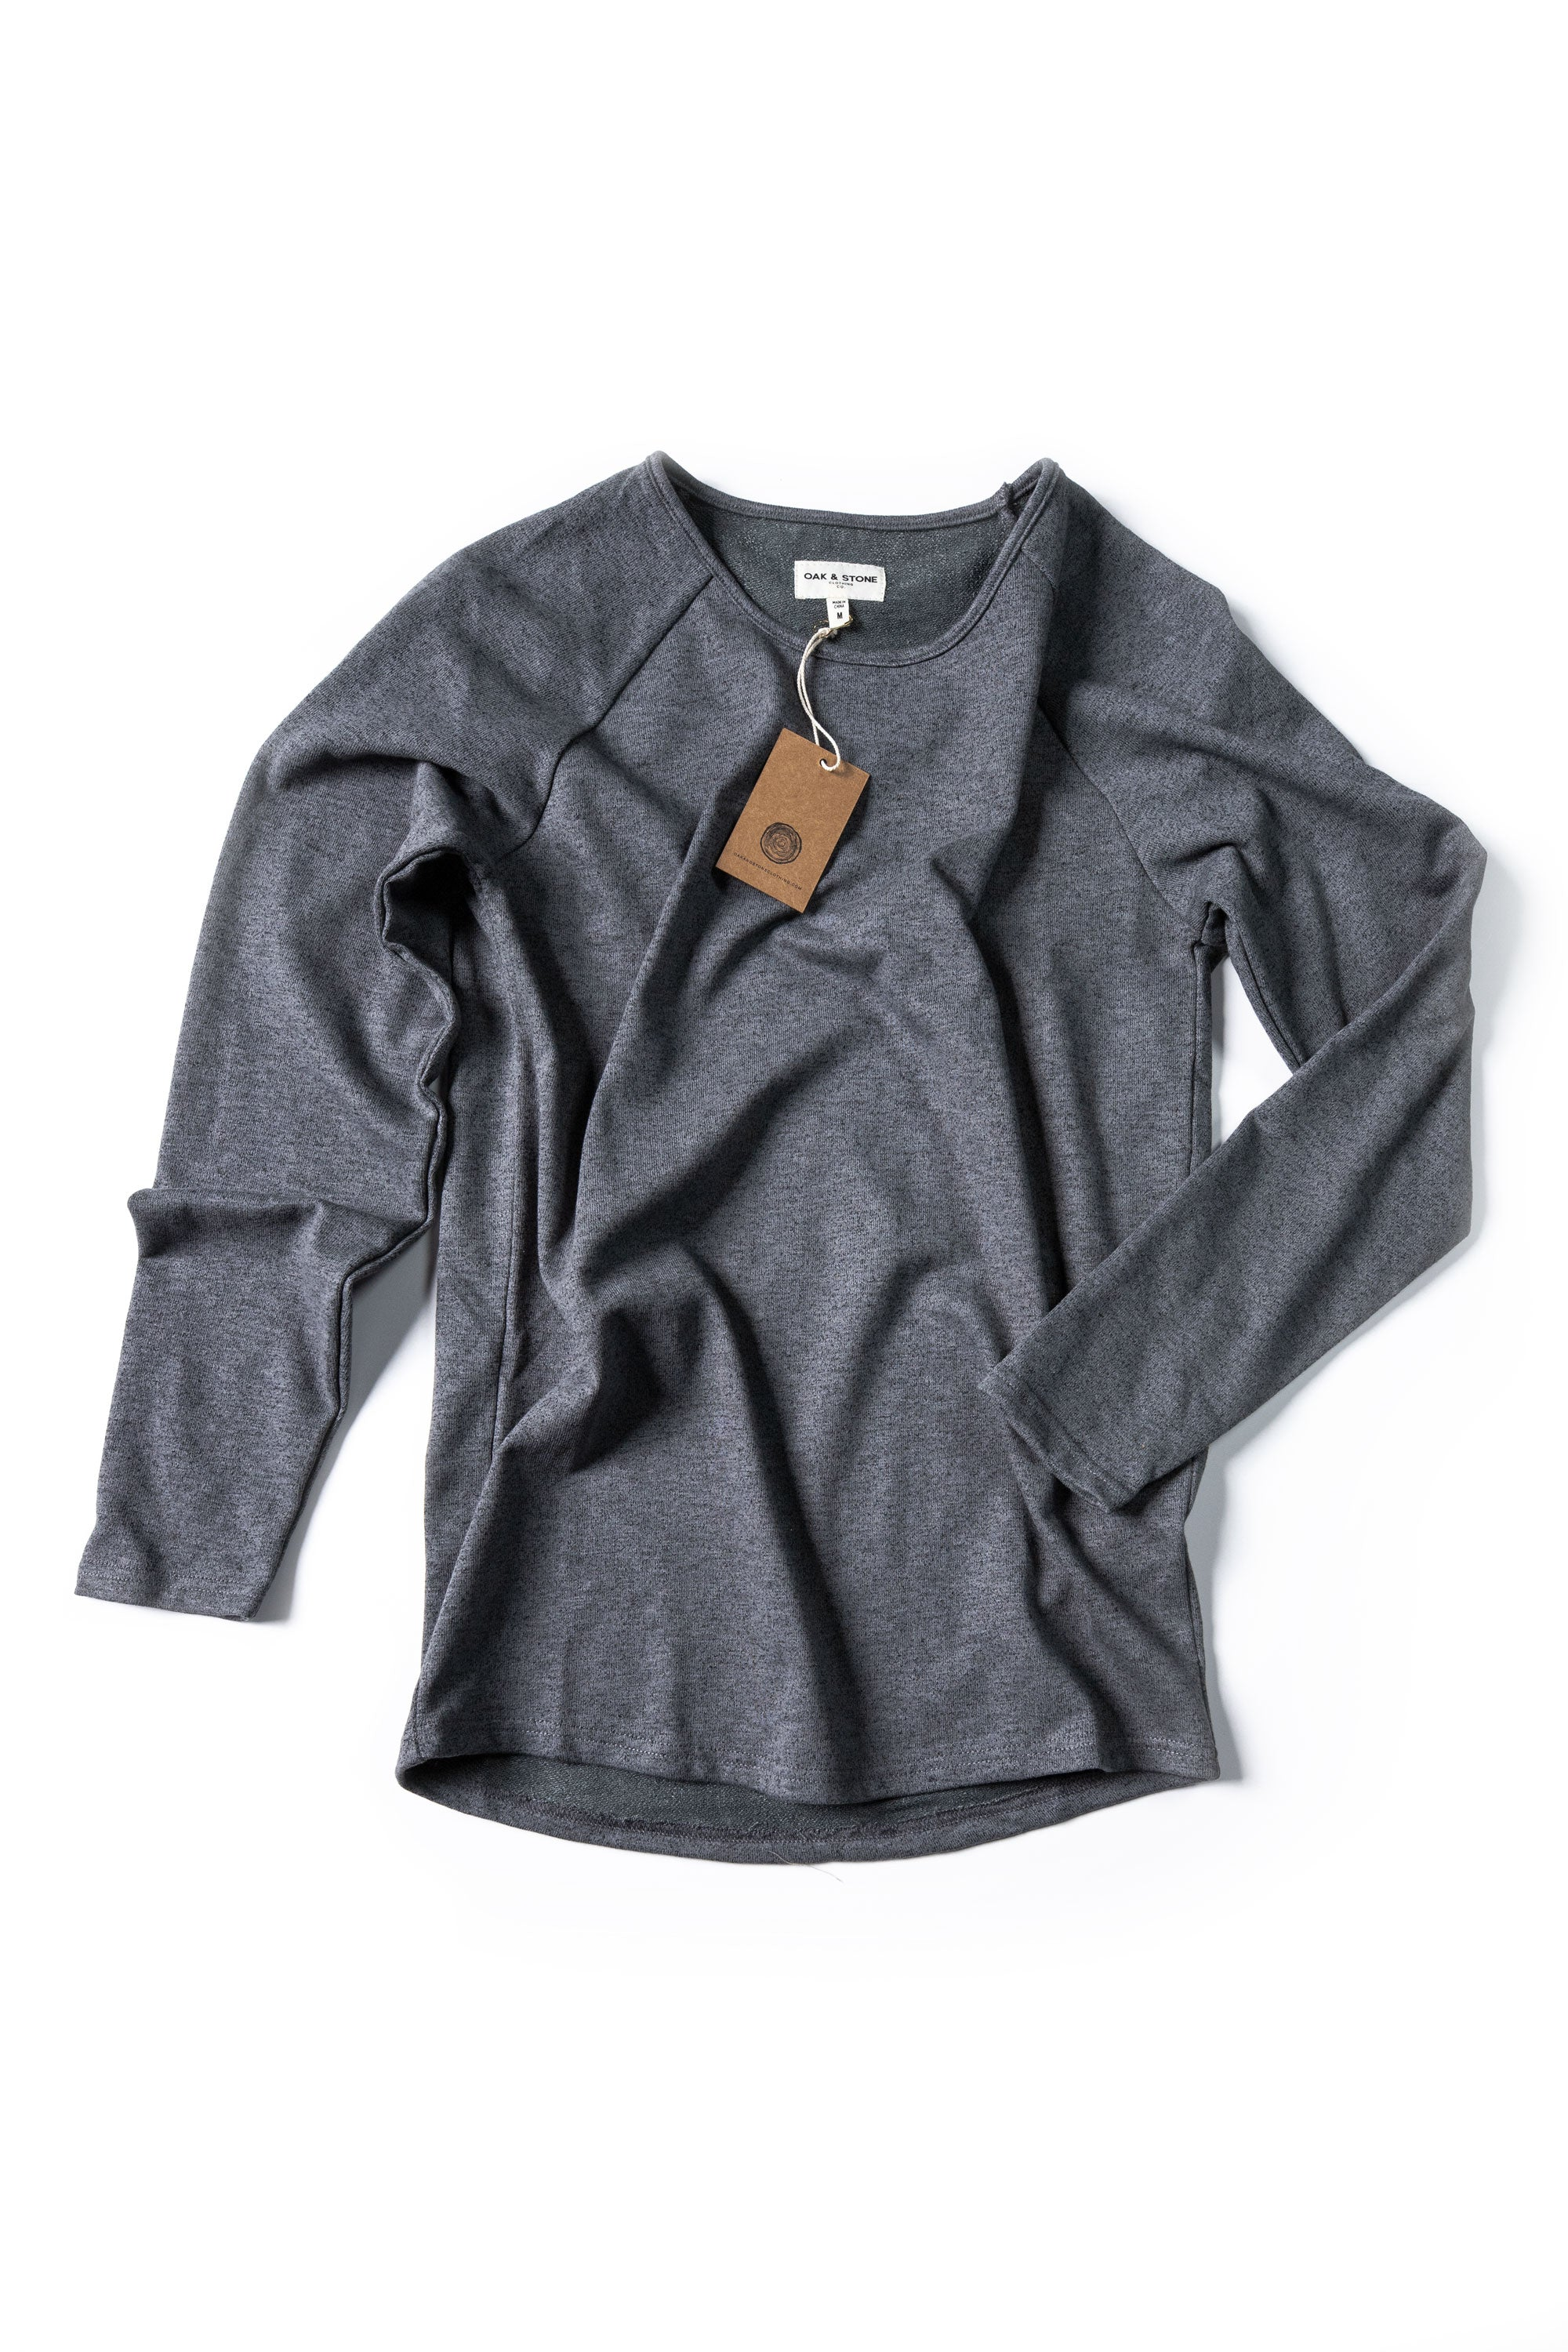 Terry Sweater - Heathered Grey - Oak & Stone Clothing Co.